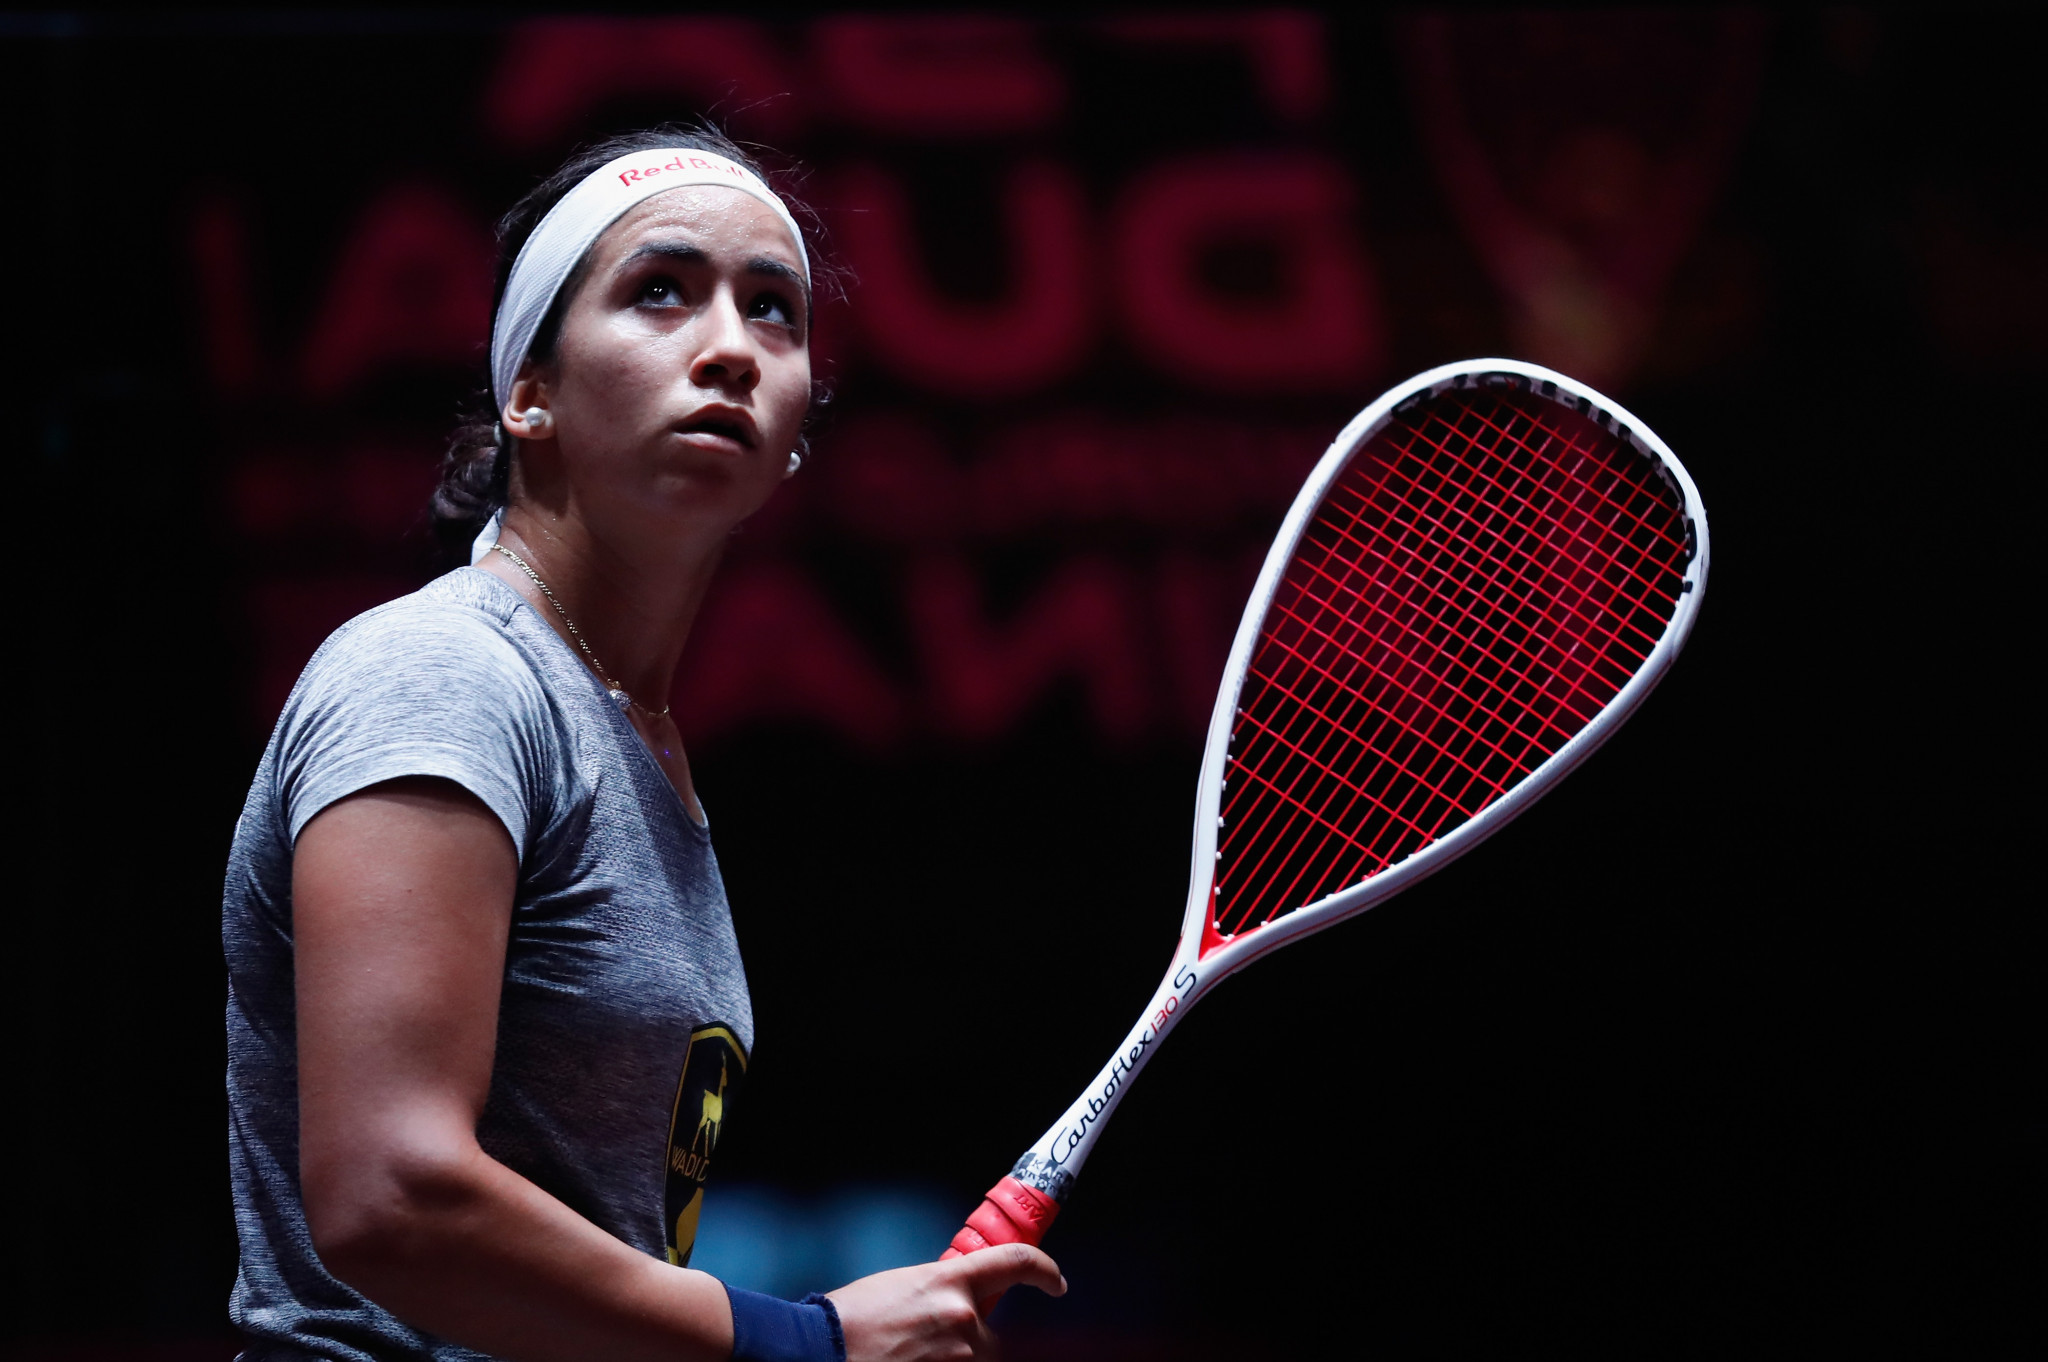 Top seed Gohar crashes out of Oracle Netsuite Open at hands of Hany